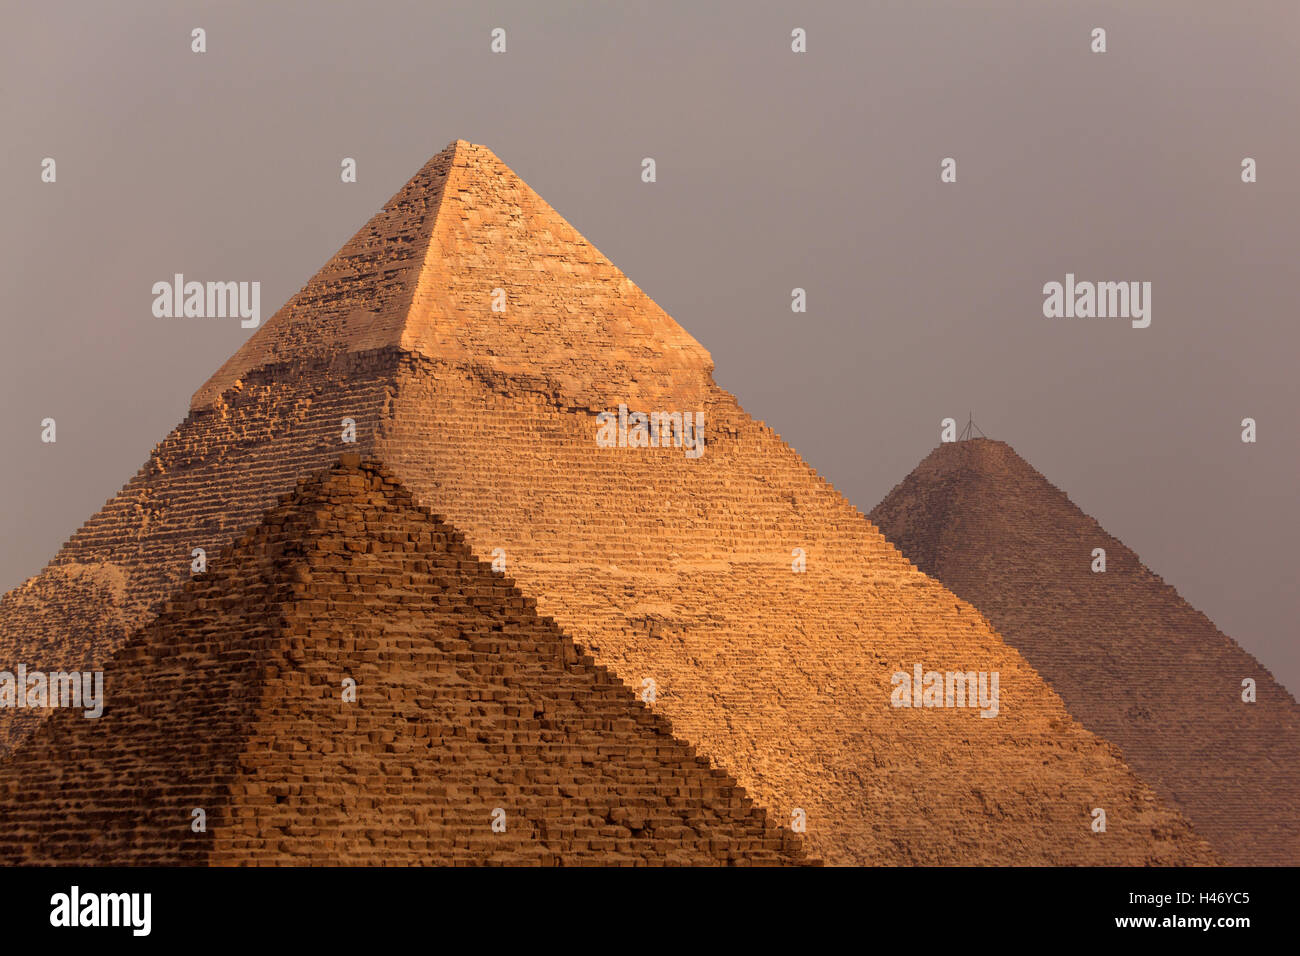 Egypt, Cairo, pyramids of Giza, - Stock Image